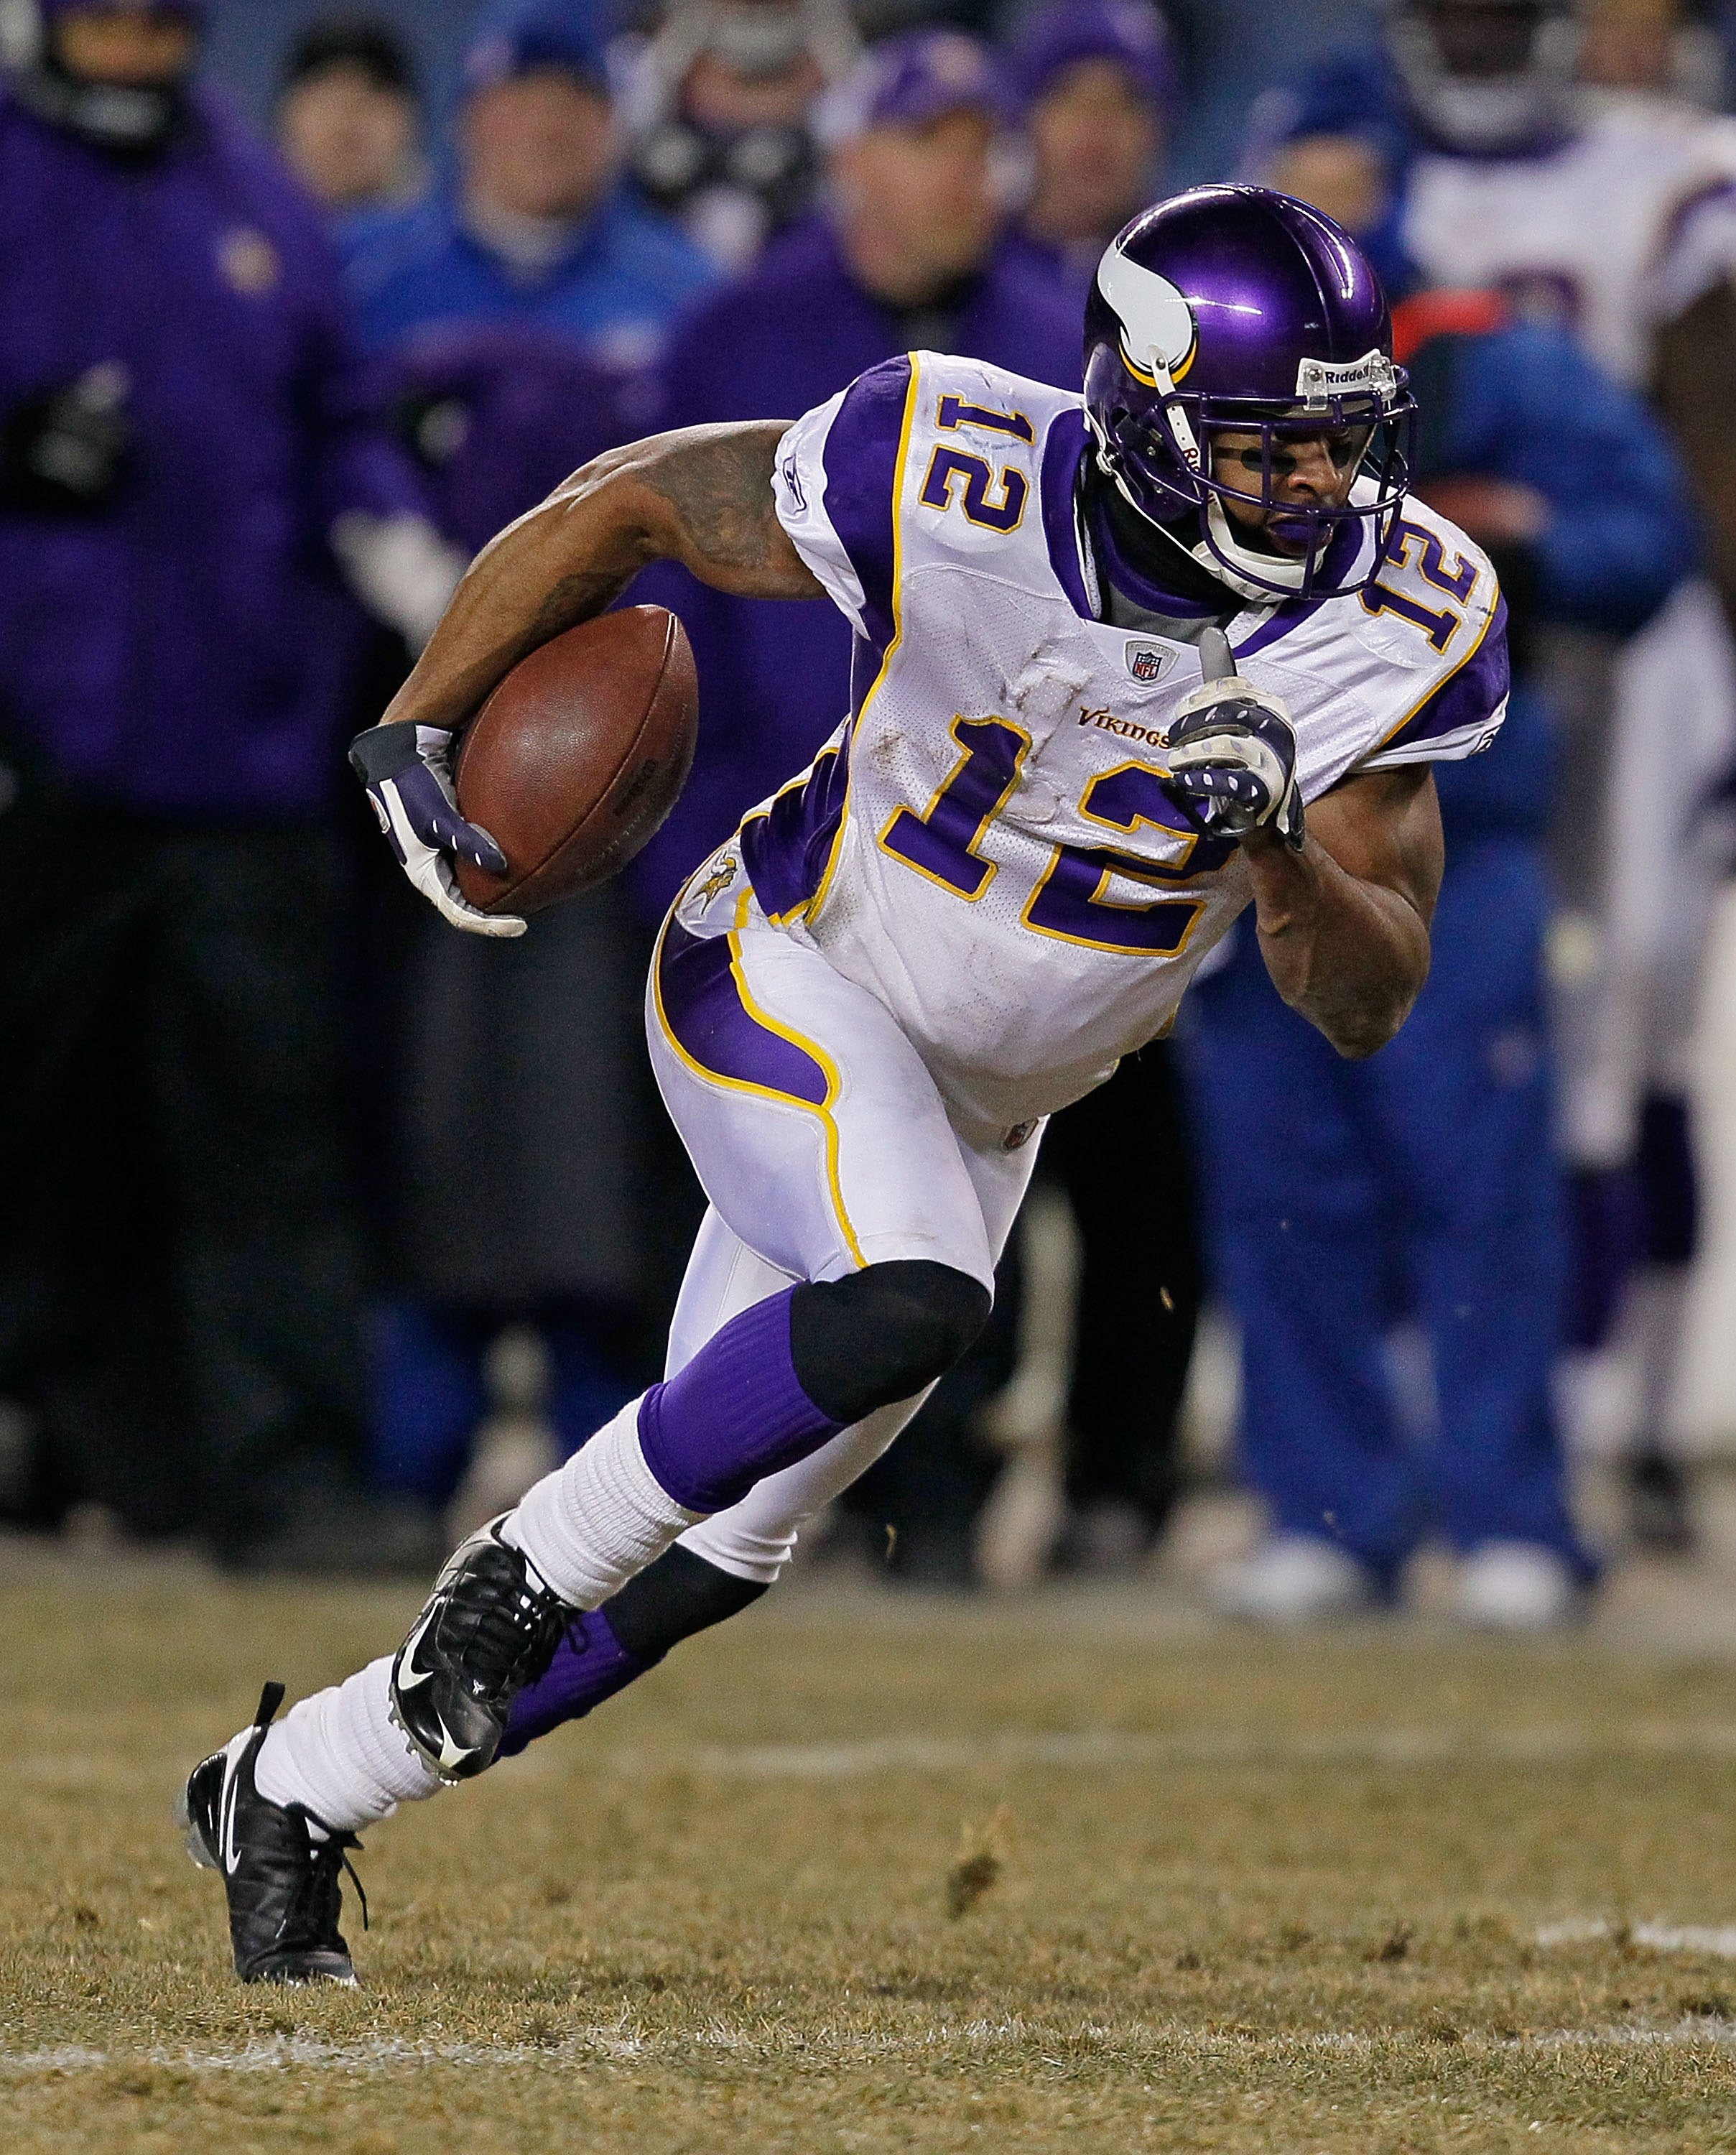 CHICAGO - DECEMBER 28: Percy Harvin #12 of the Minnesota Vikings runs after a catch against the Chicago Bears at Soldier Field on December 28, 2009 in Chicago, Illinois. The Bears defeated the Vikings 36-30 in overtime. (Photo by Jonathan Daniel/Getty Ima